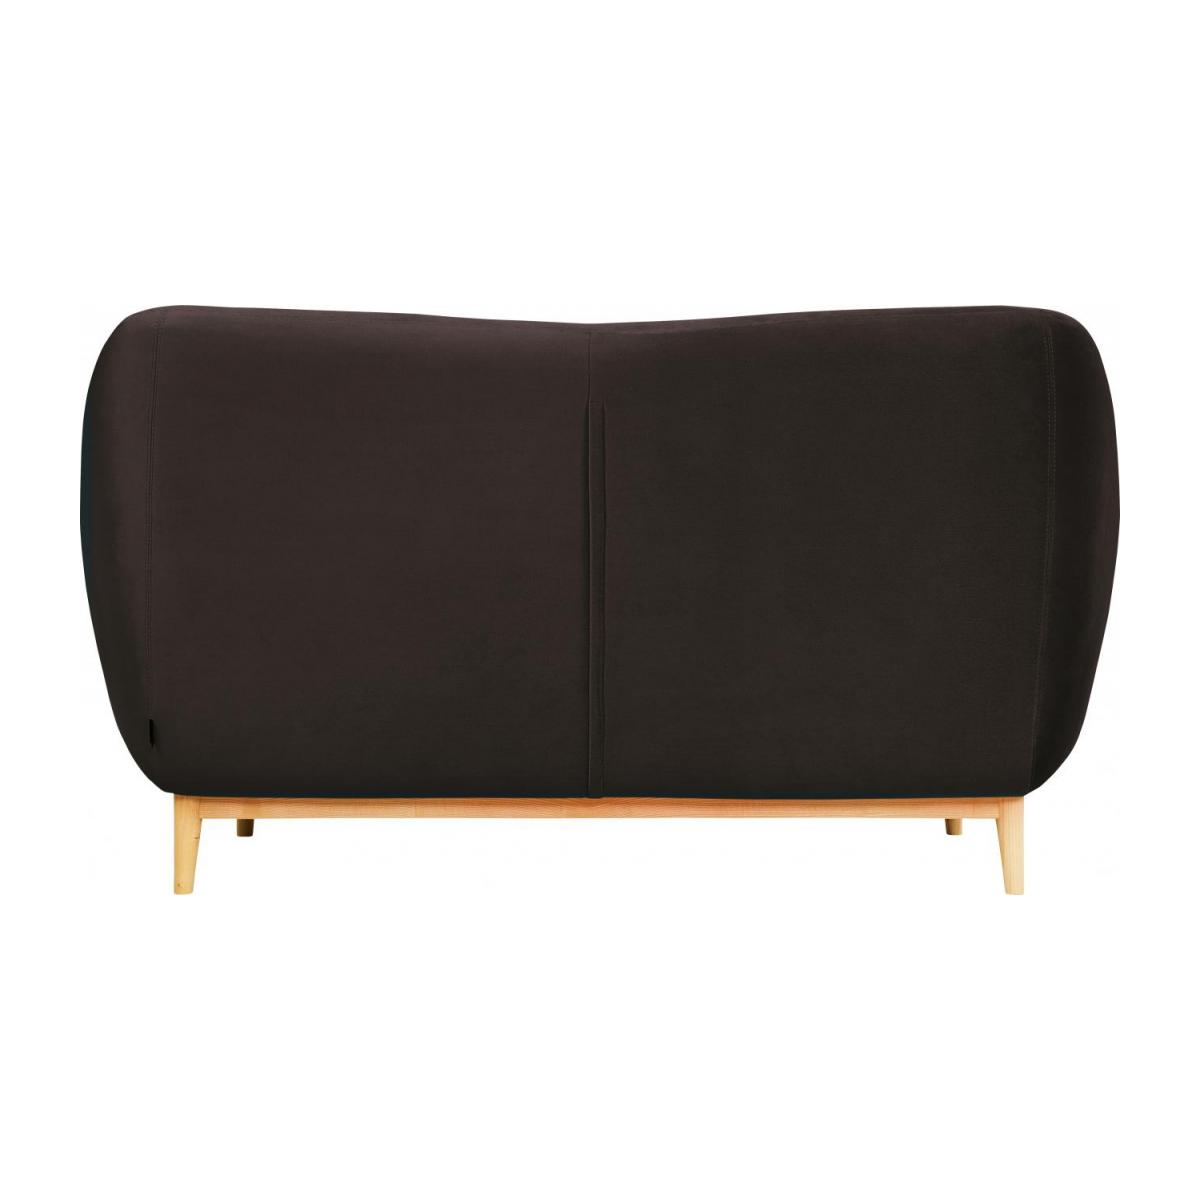 2-seat sofa made of velvet, grey n°3